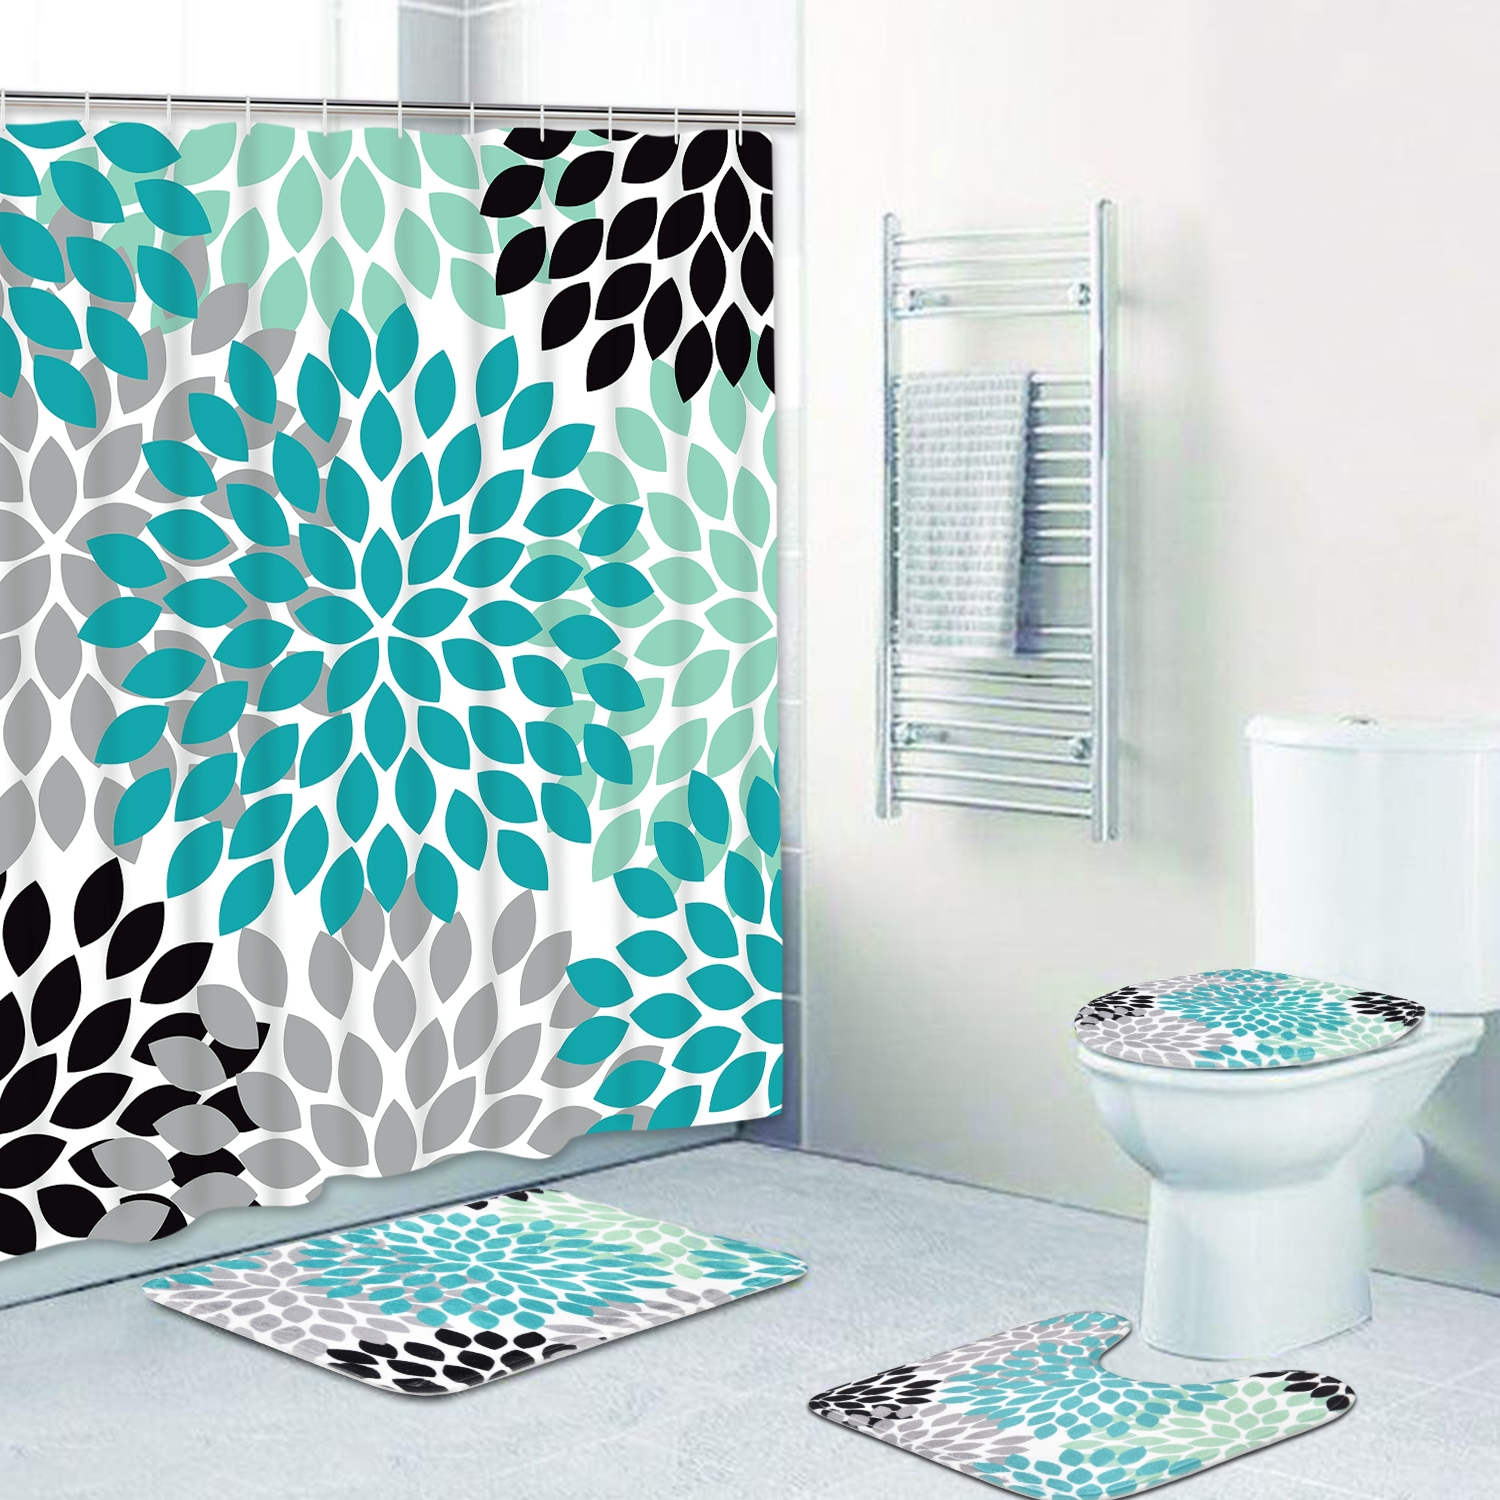 4 Pcs Turquoise Print Bathroom Sets Non Slip Rugs Toilet Lid Cover Bathroom Mats Turquoise Shower Curtains With 12 Hooks Turquoise Grey Black Print Decorative Bathroom Accessories Wish